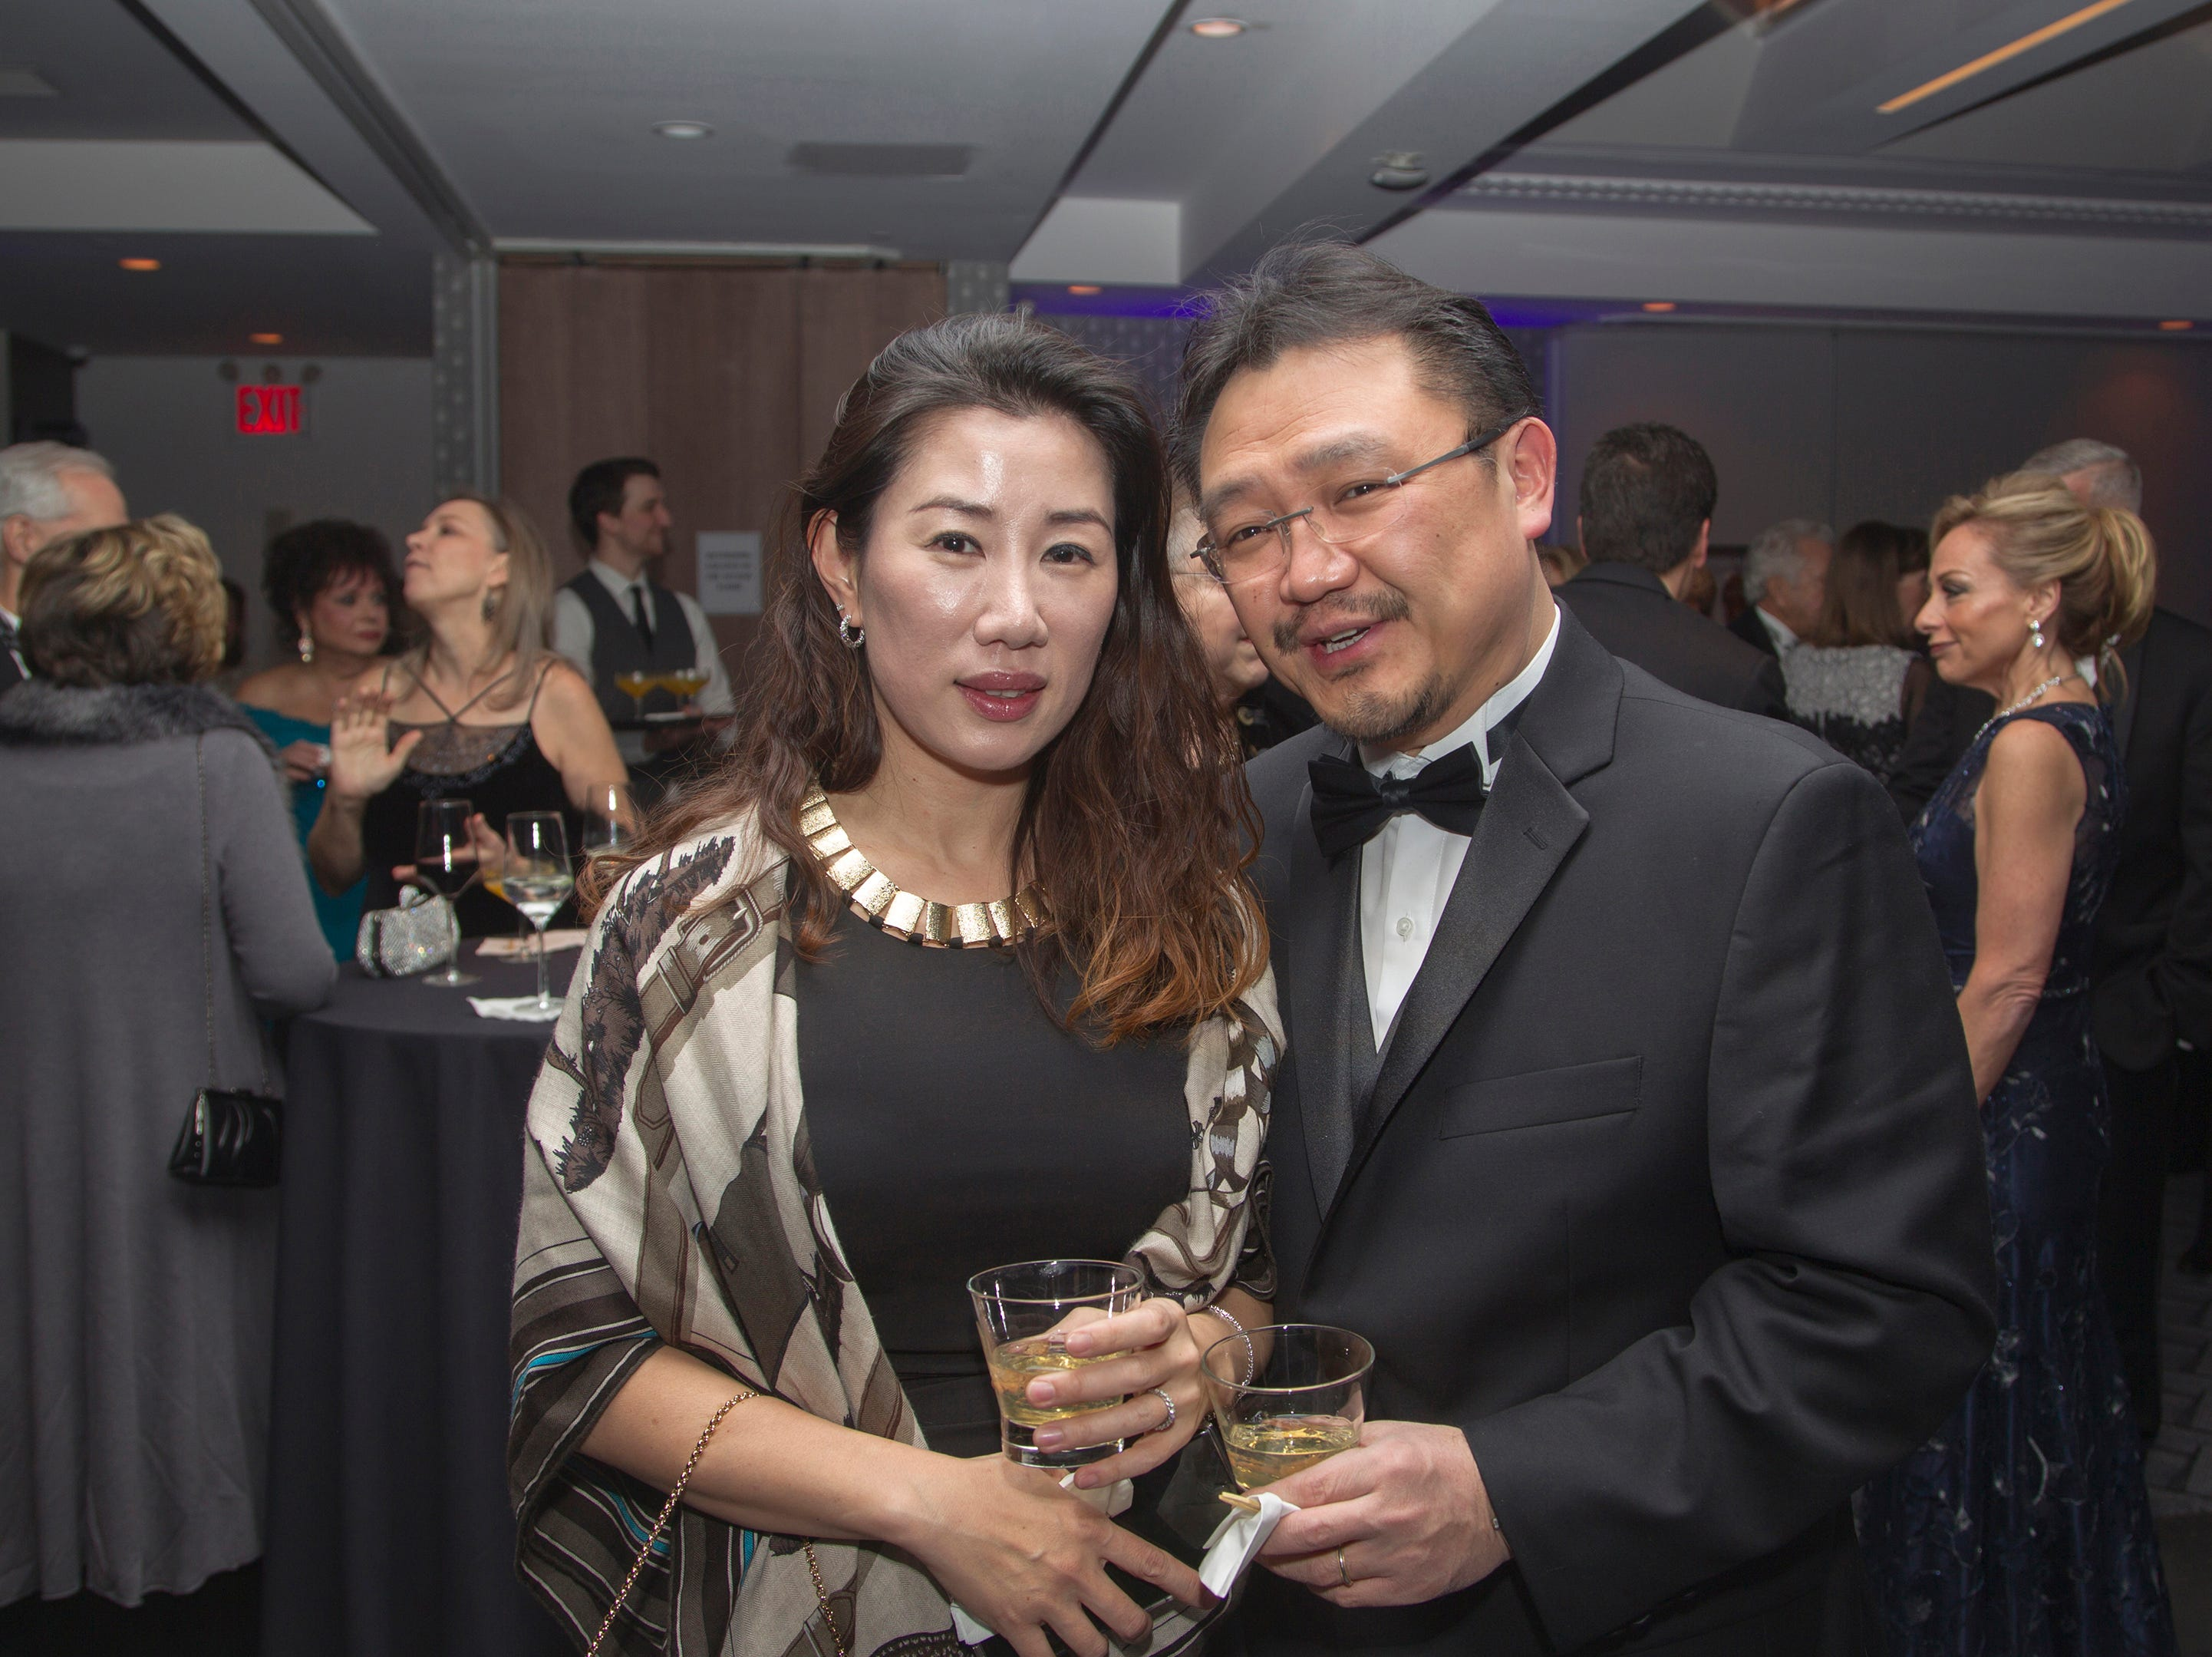 Yun and Dr. Richard Joo. Holy Name Medical Center held its 2018 Founders Ball in NYC at Ziegfeld Ballroom. 11/17/2018